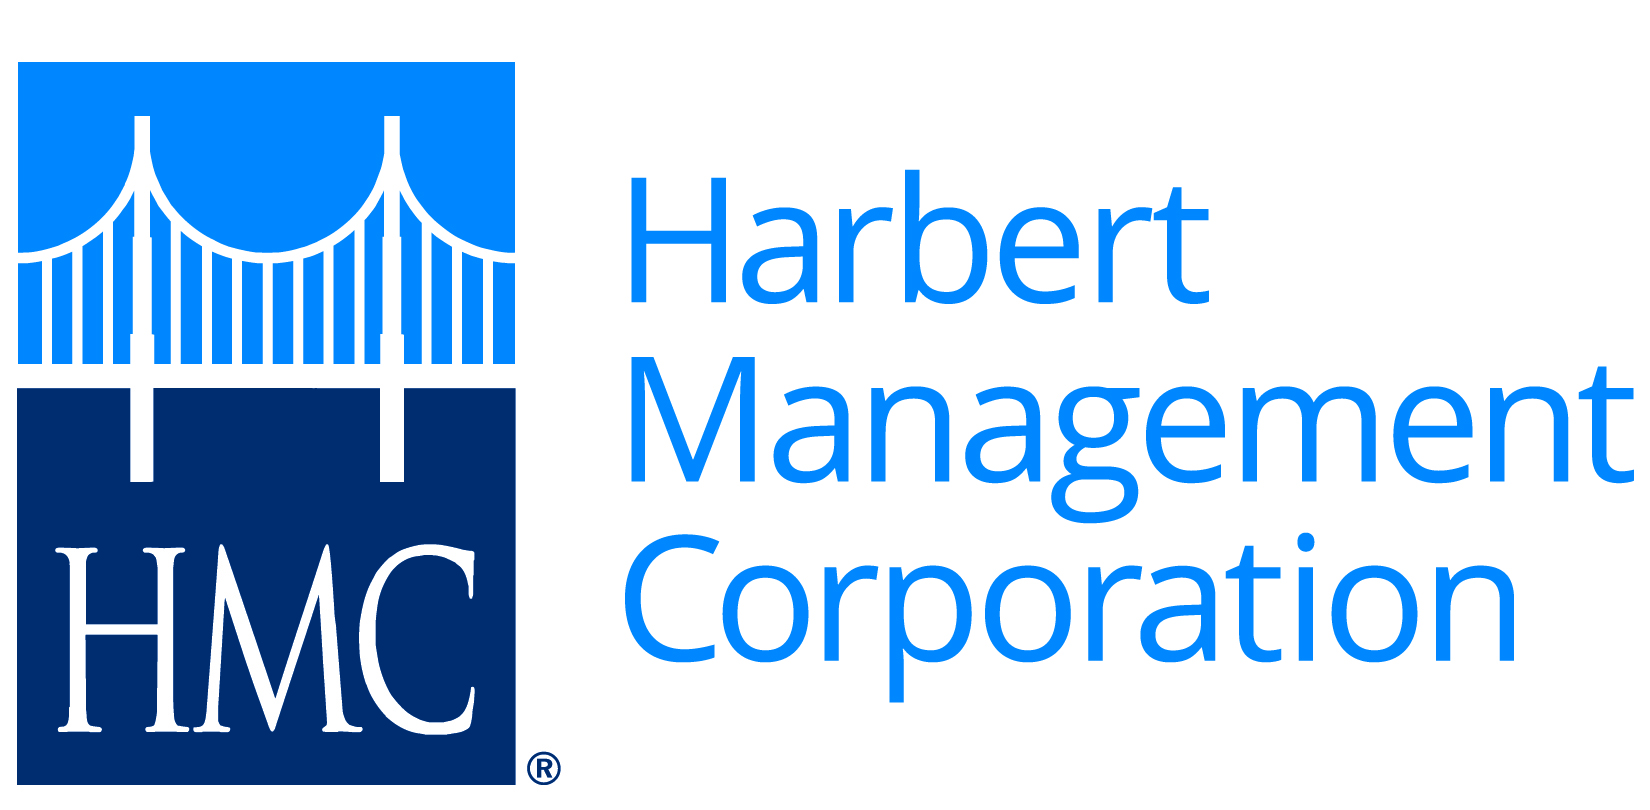 ABC-Harbert-Managament-Corp